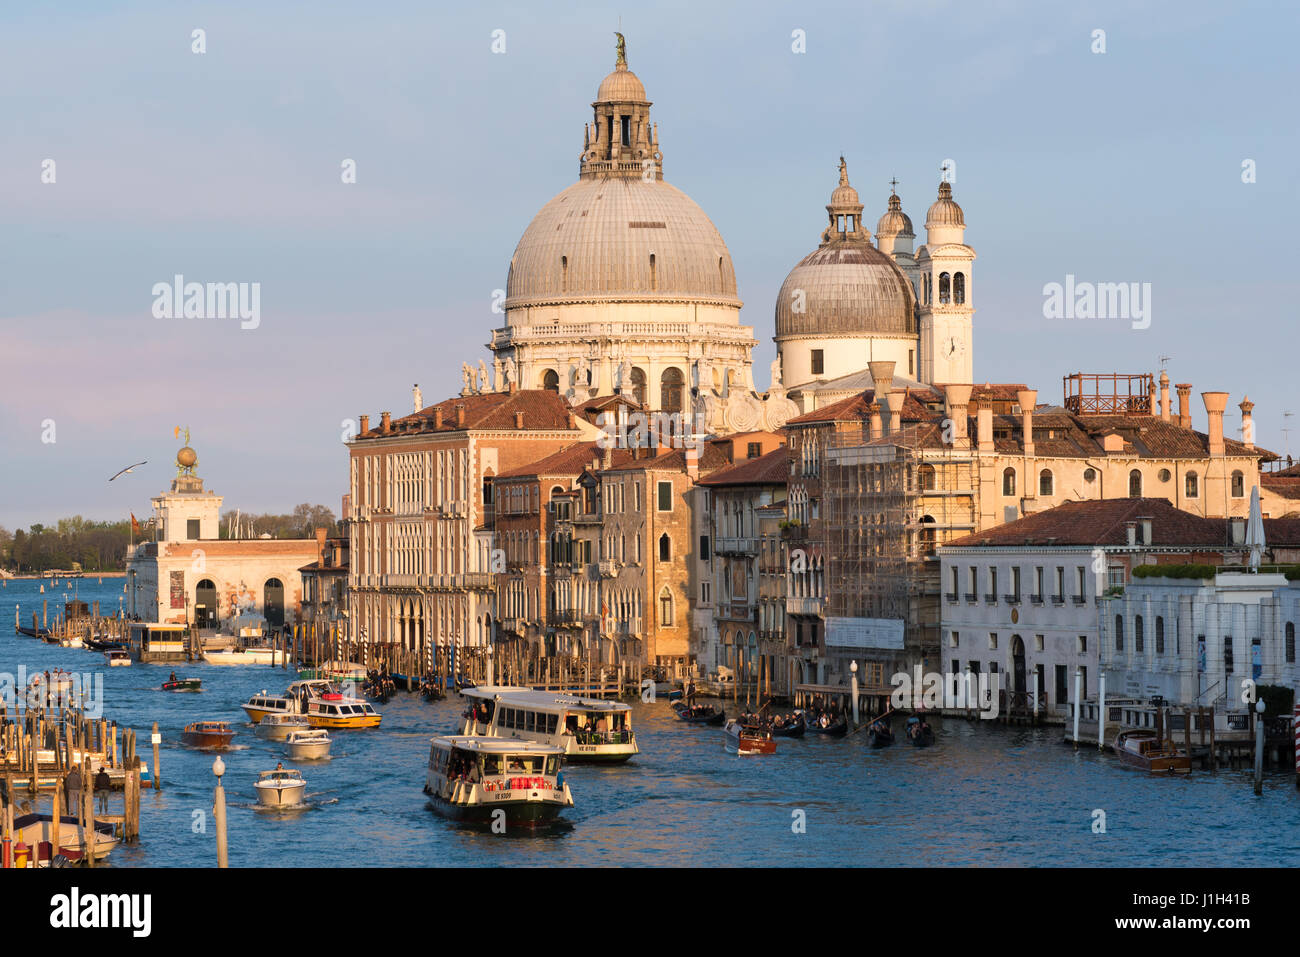 Venice Grand Canal in evening sunshine taken from Ponte dell'Accademia bridge Stock Photo